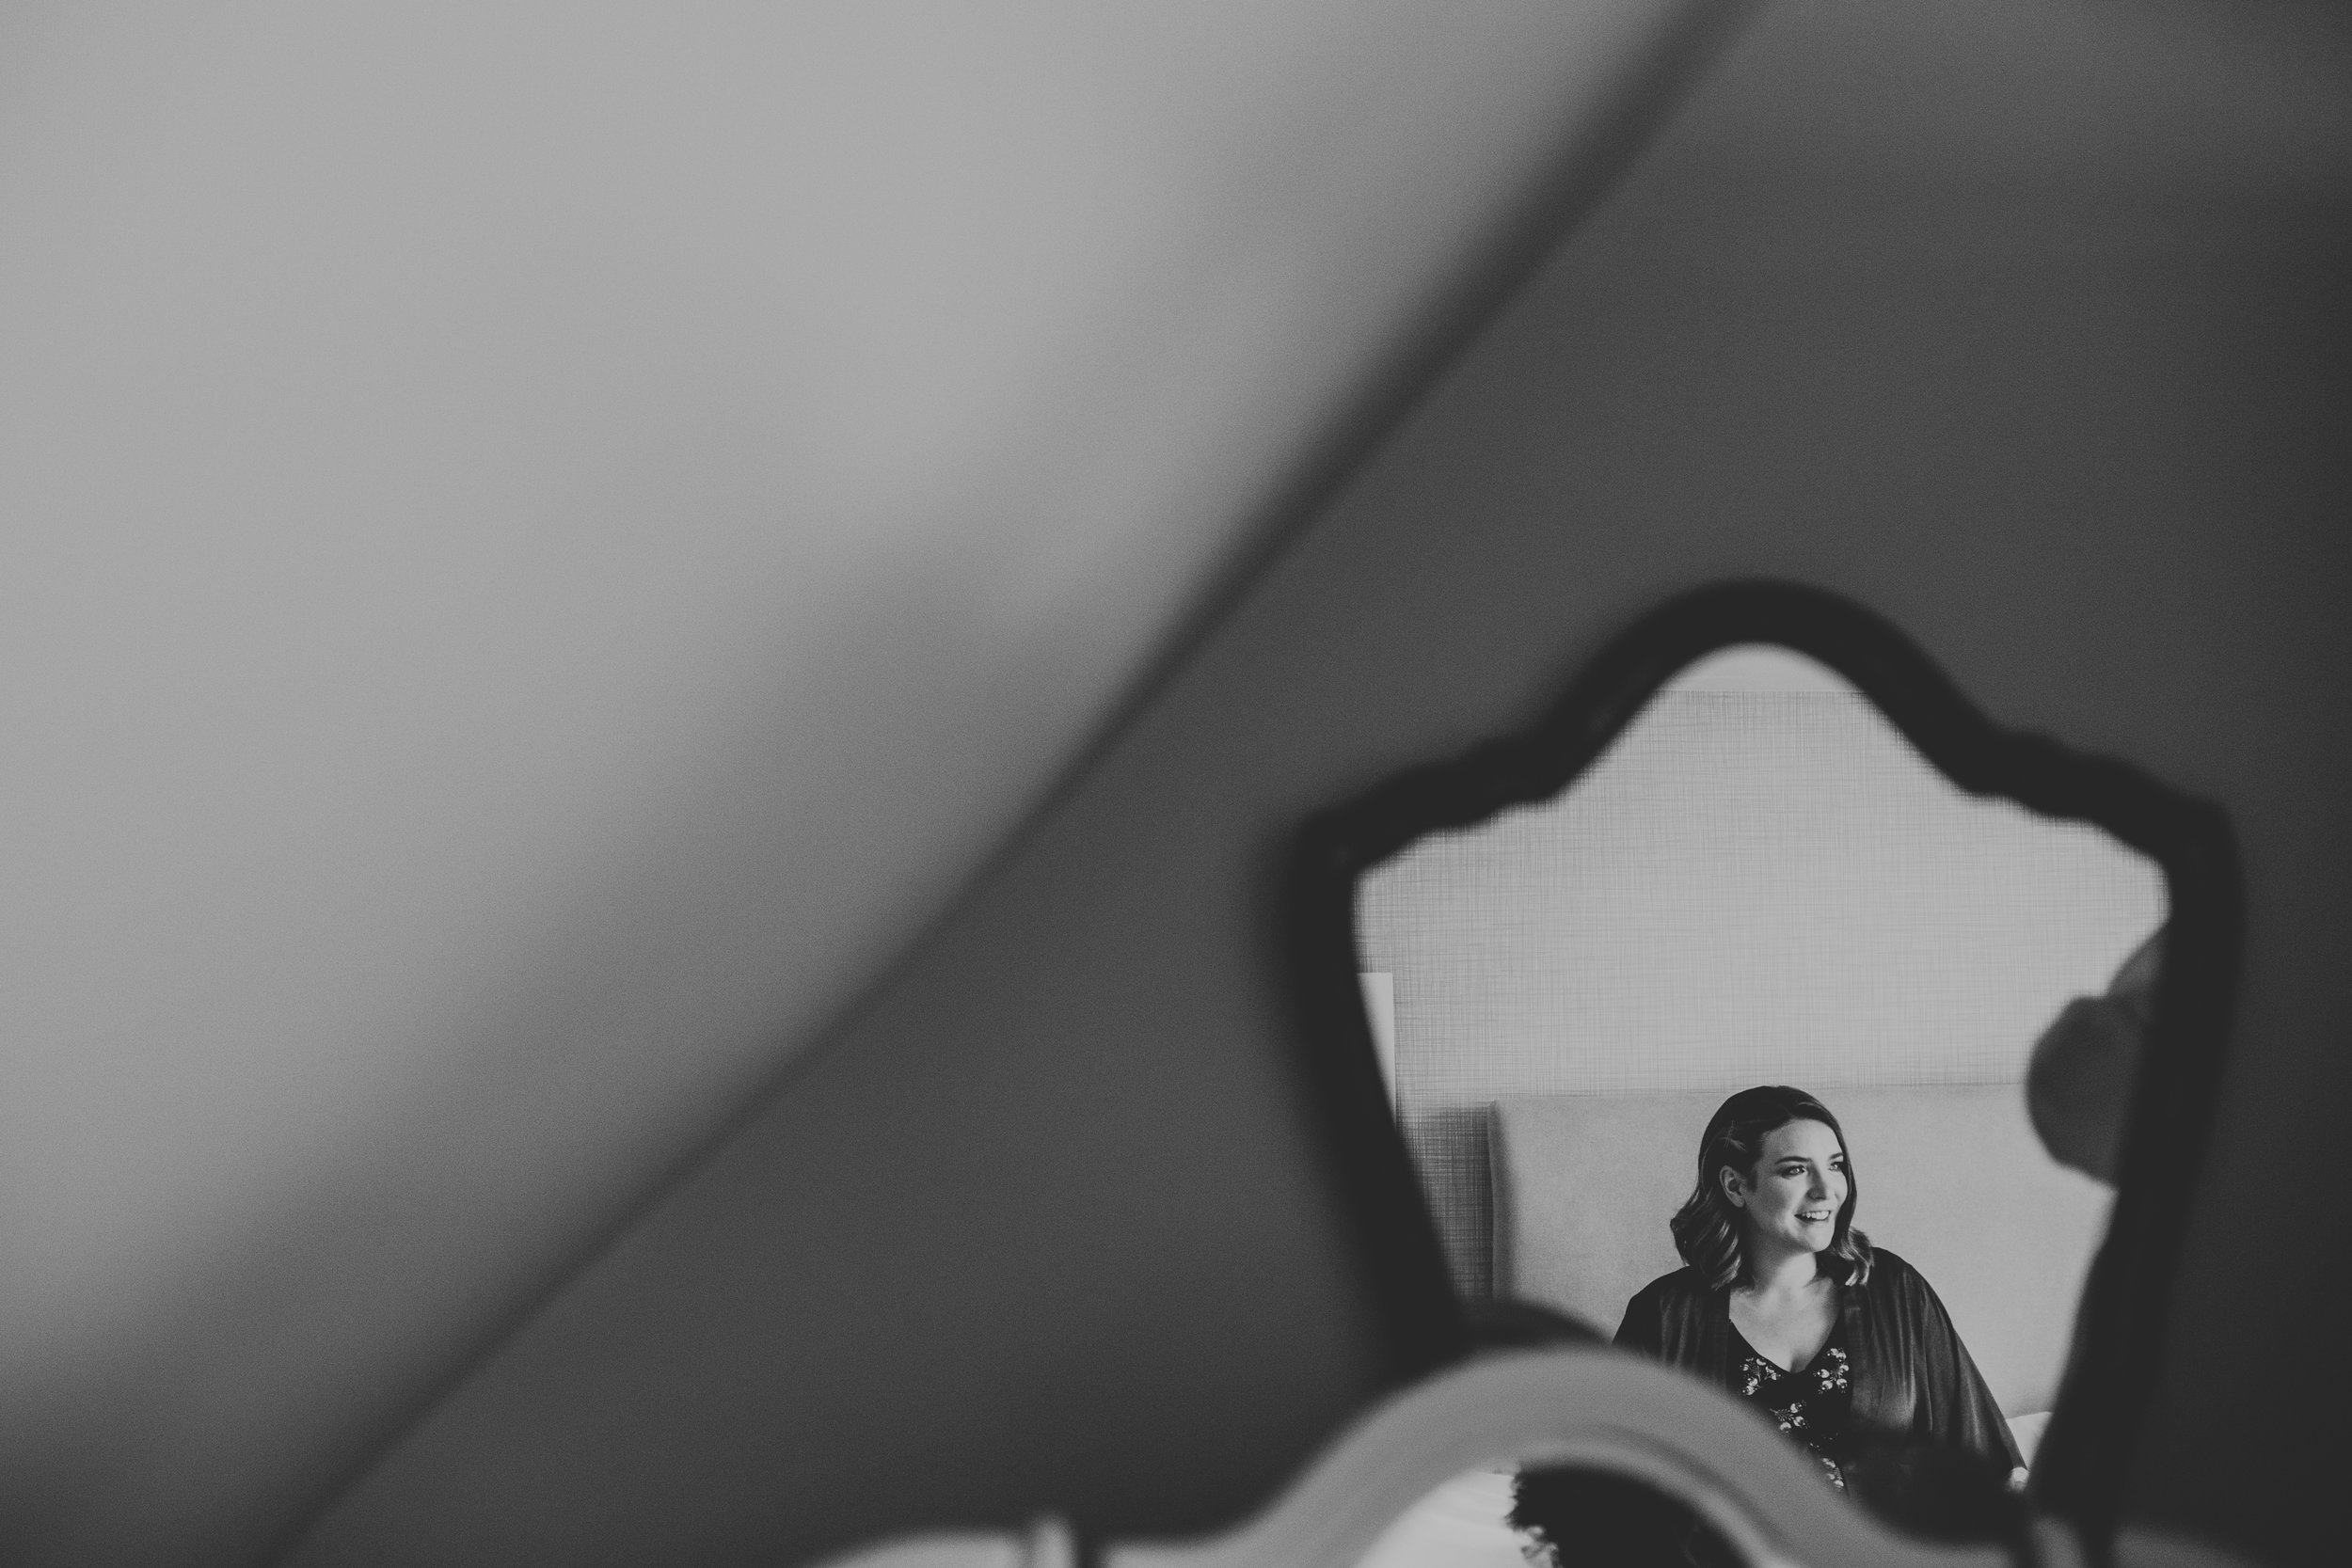 Reflection of bridesmaid in mirror. Photo in black and white.